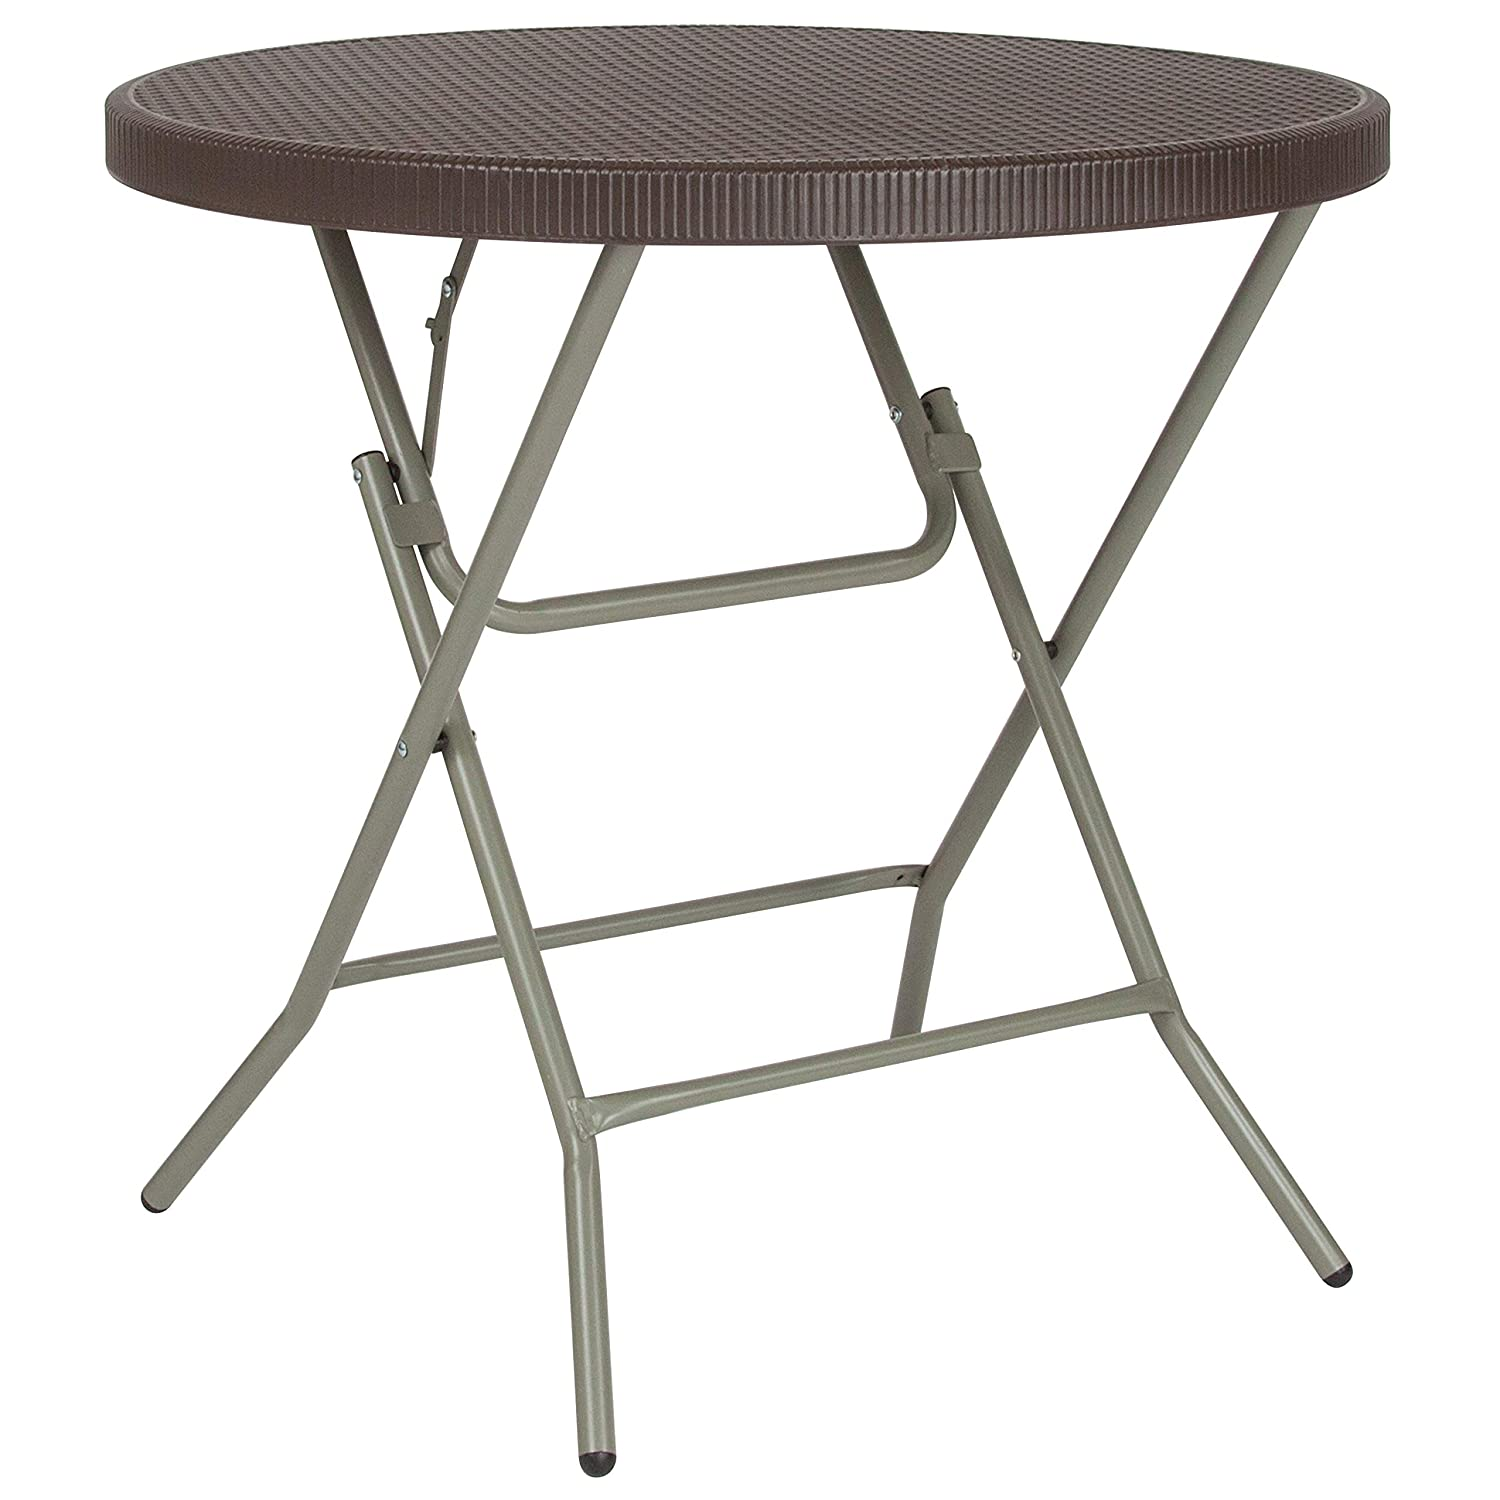 Flash Furniture 31.5 Round Brown Rattan Plastic Folding Table